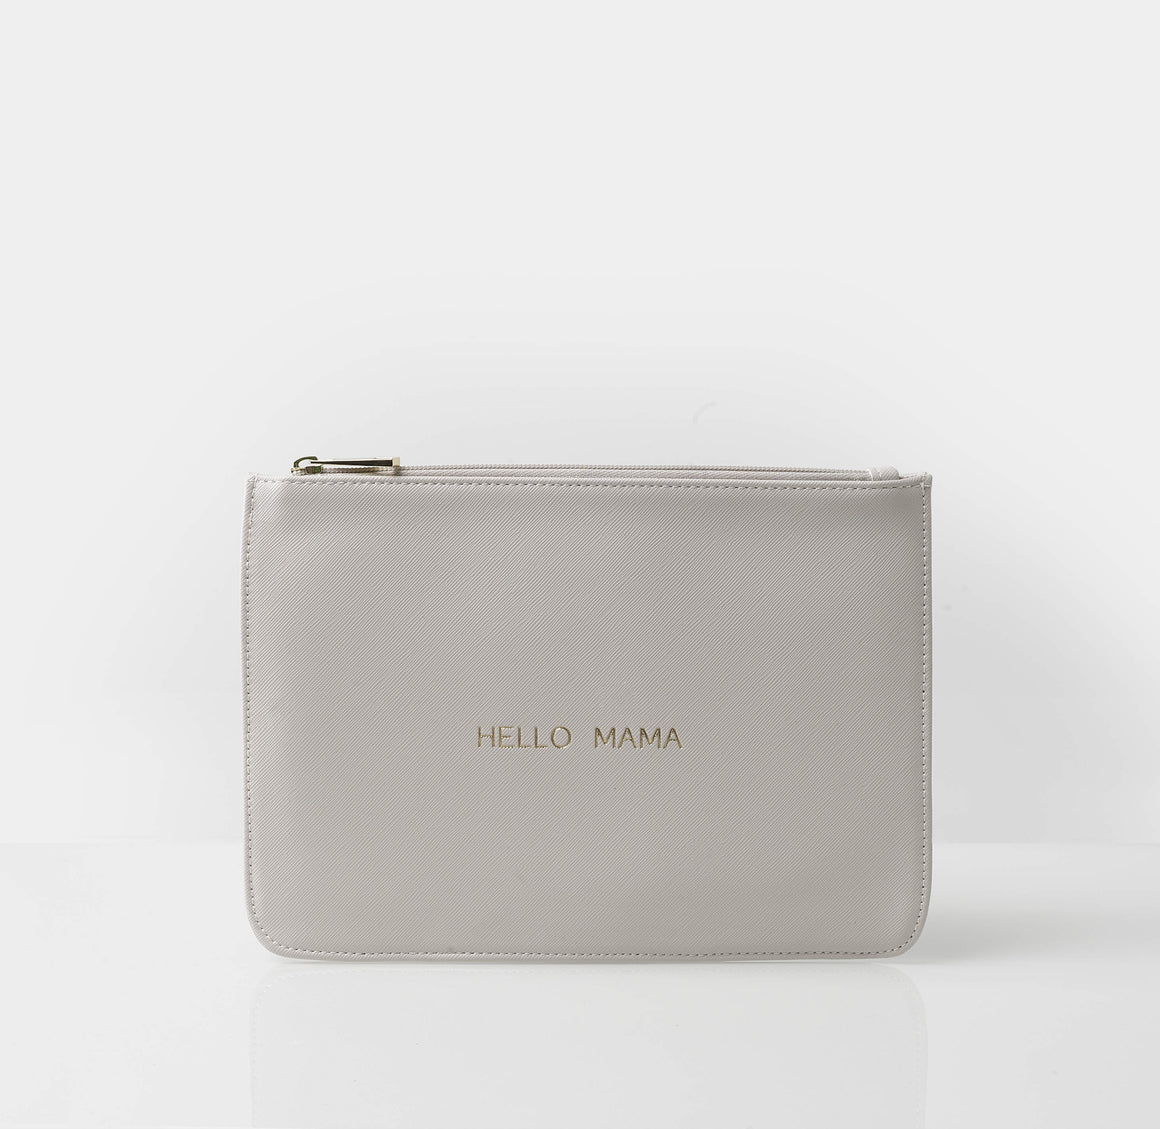 Additional Hello Mama Pouch